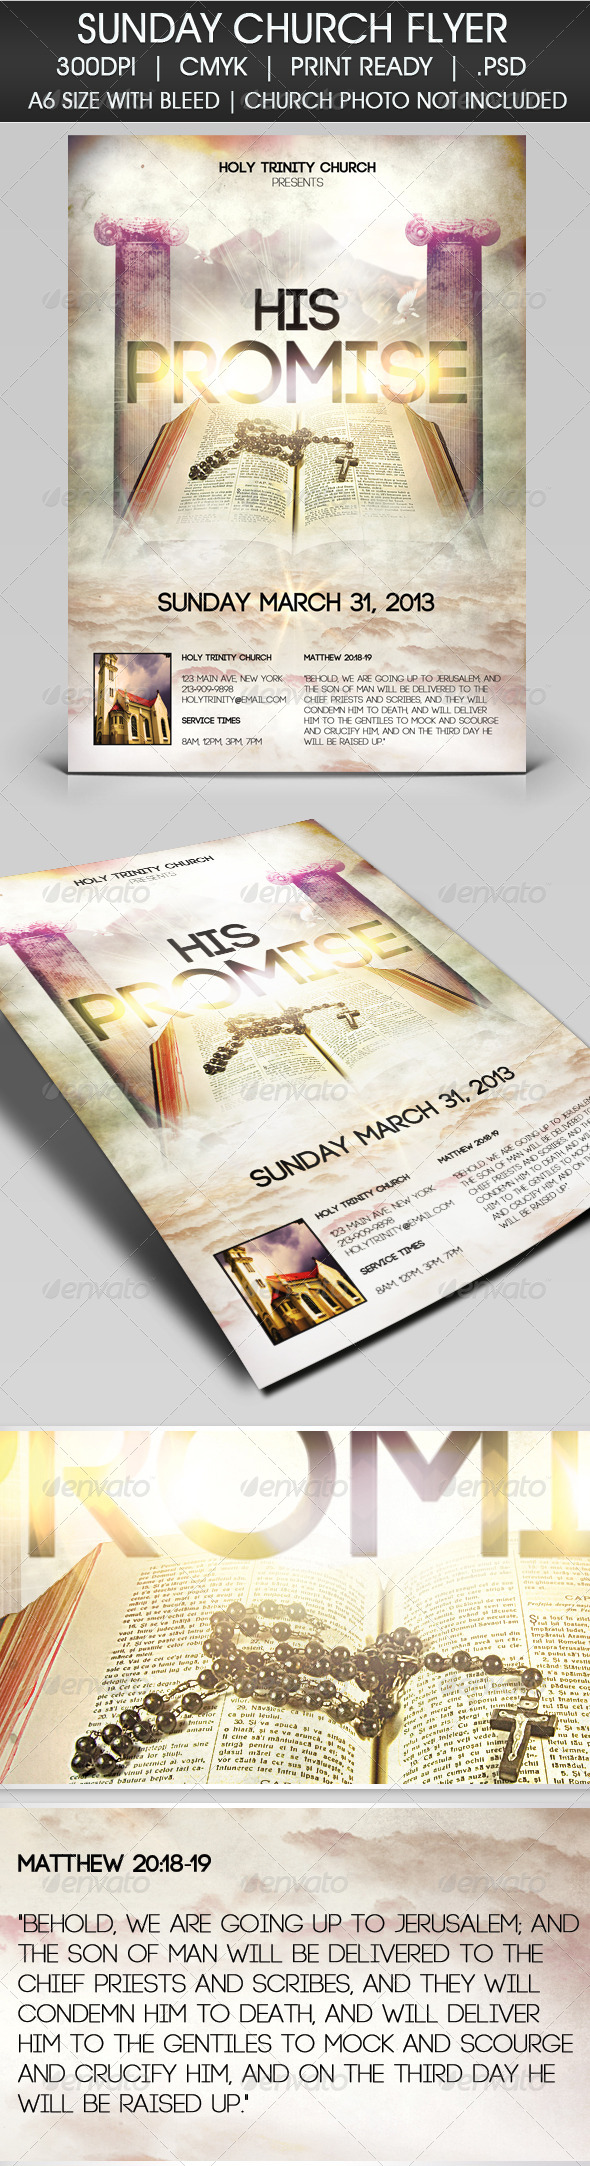 GraphicRiver Easter Sunday He Has Risen Flyer 3895738